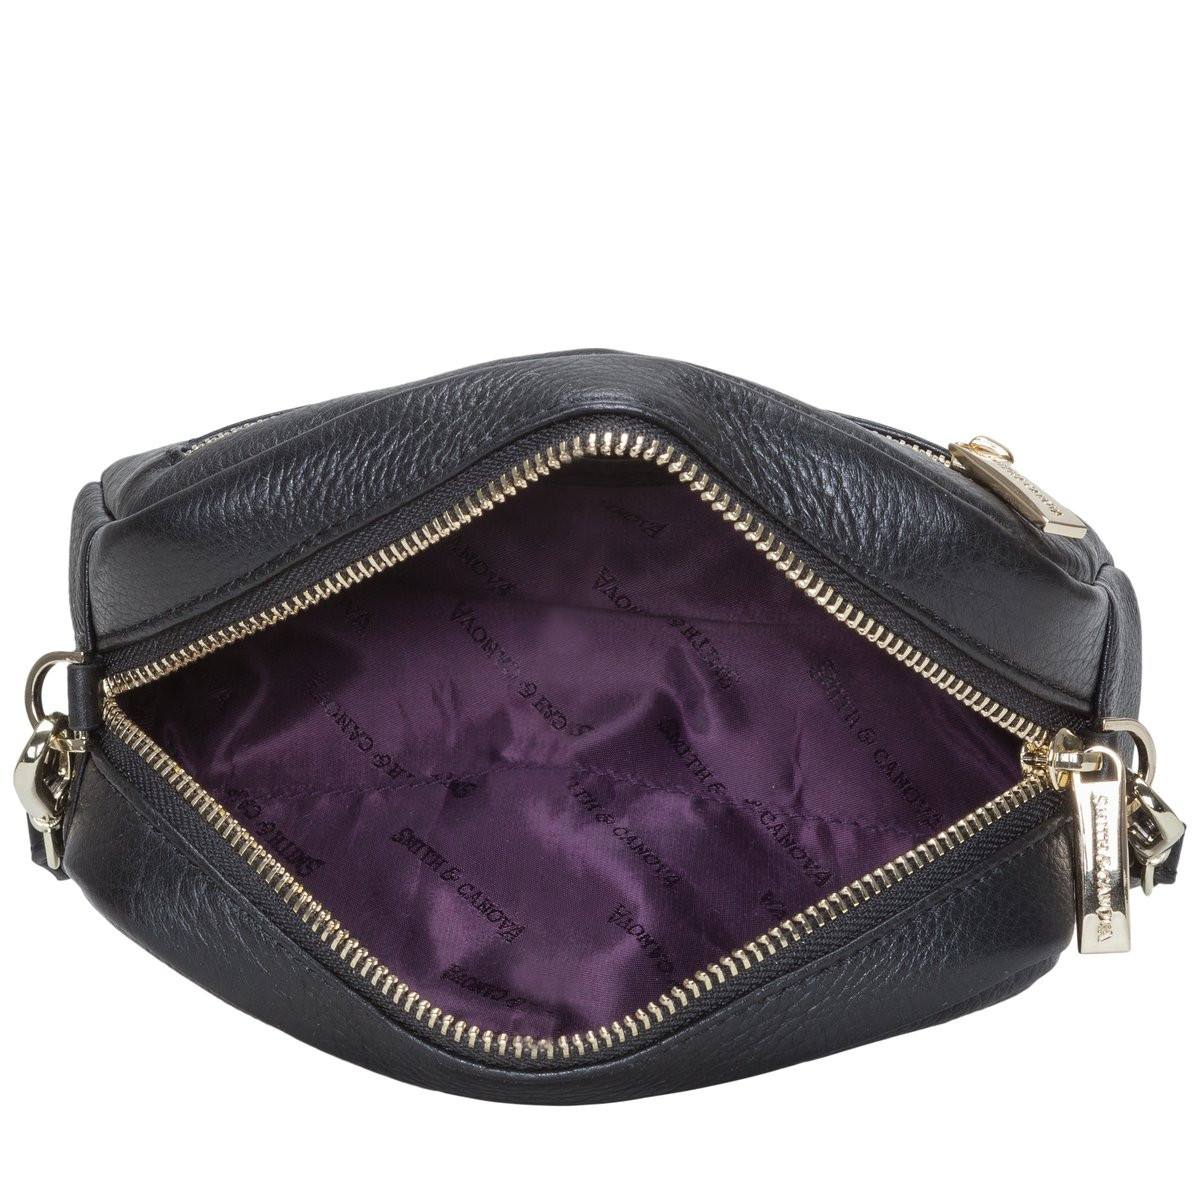 Small Zip Top Cross-body Bag · 92914 · 92914 · 92914 9bc26d0a3abe0